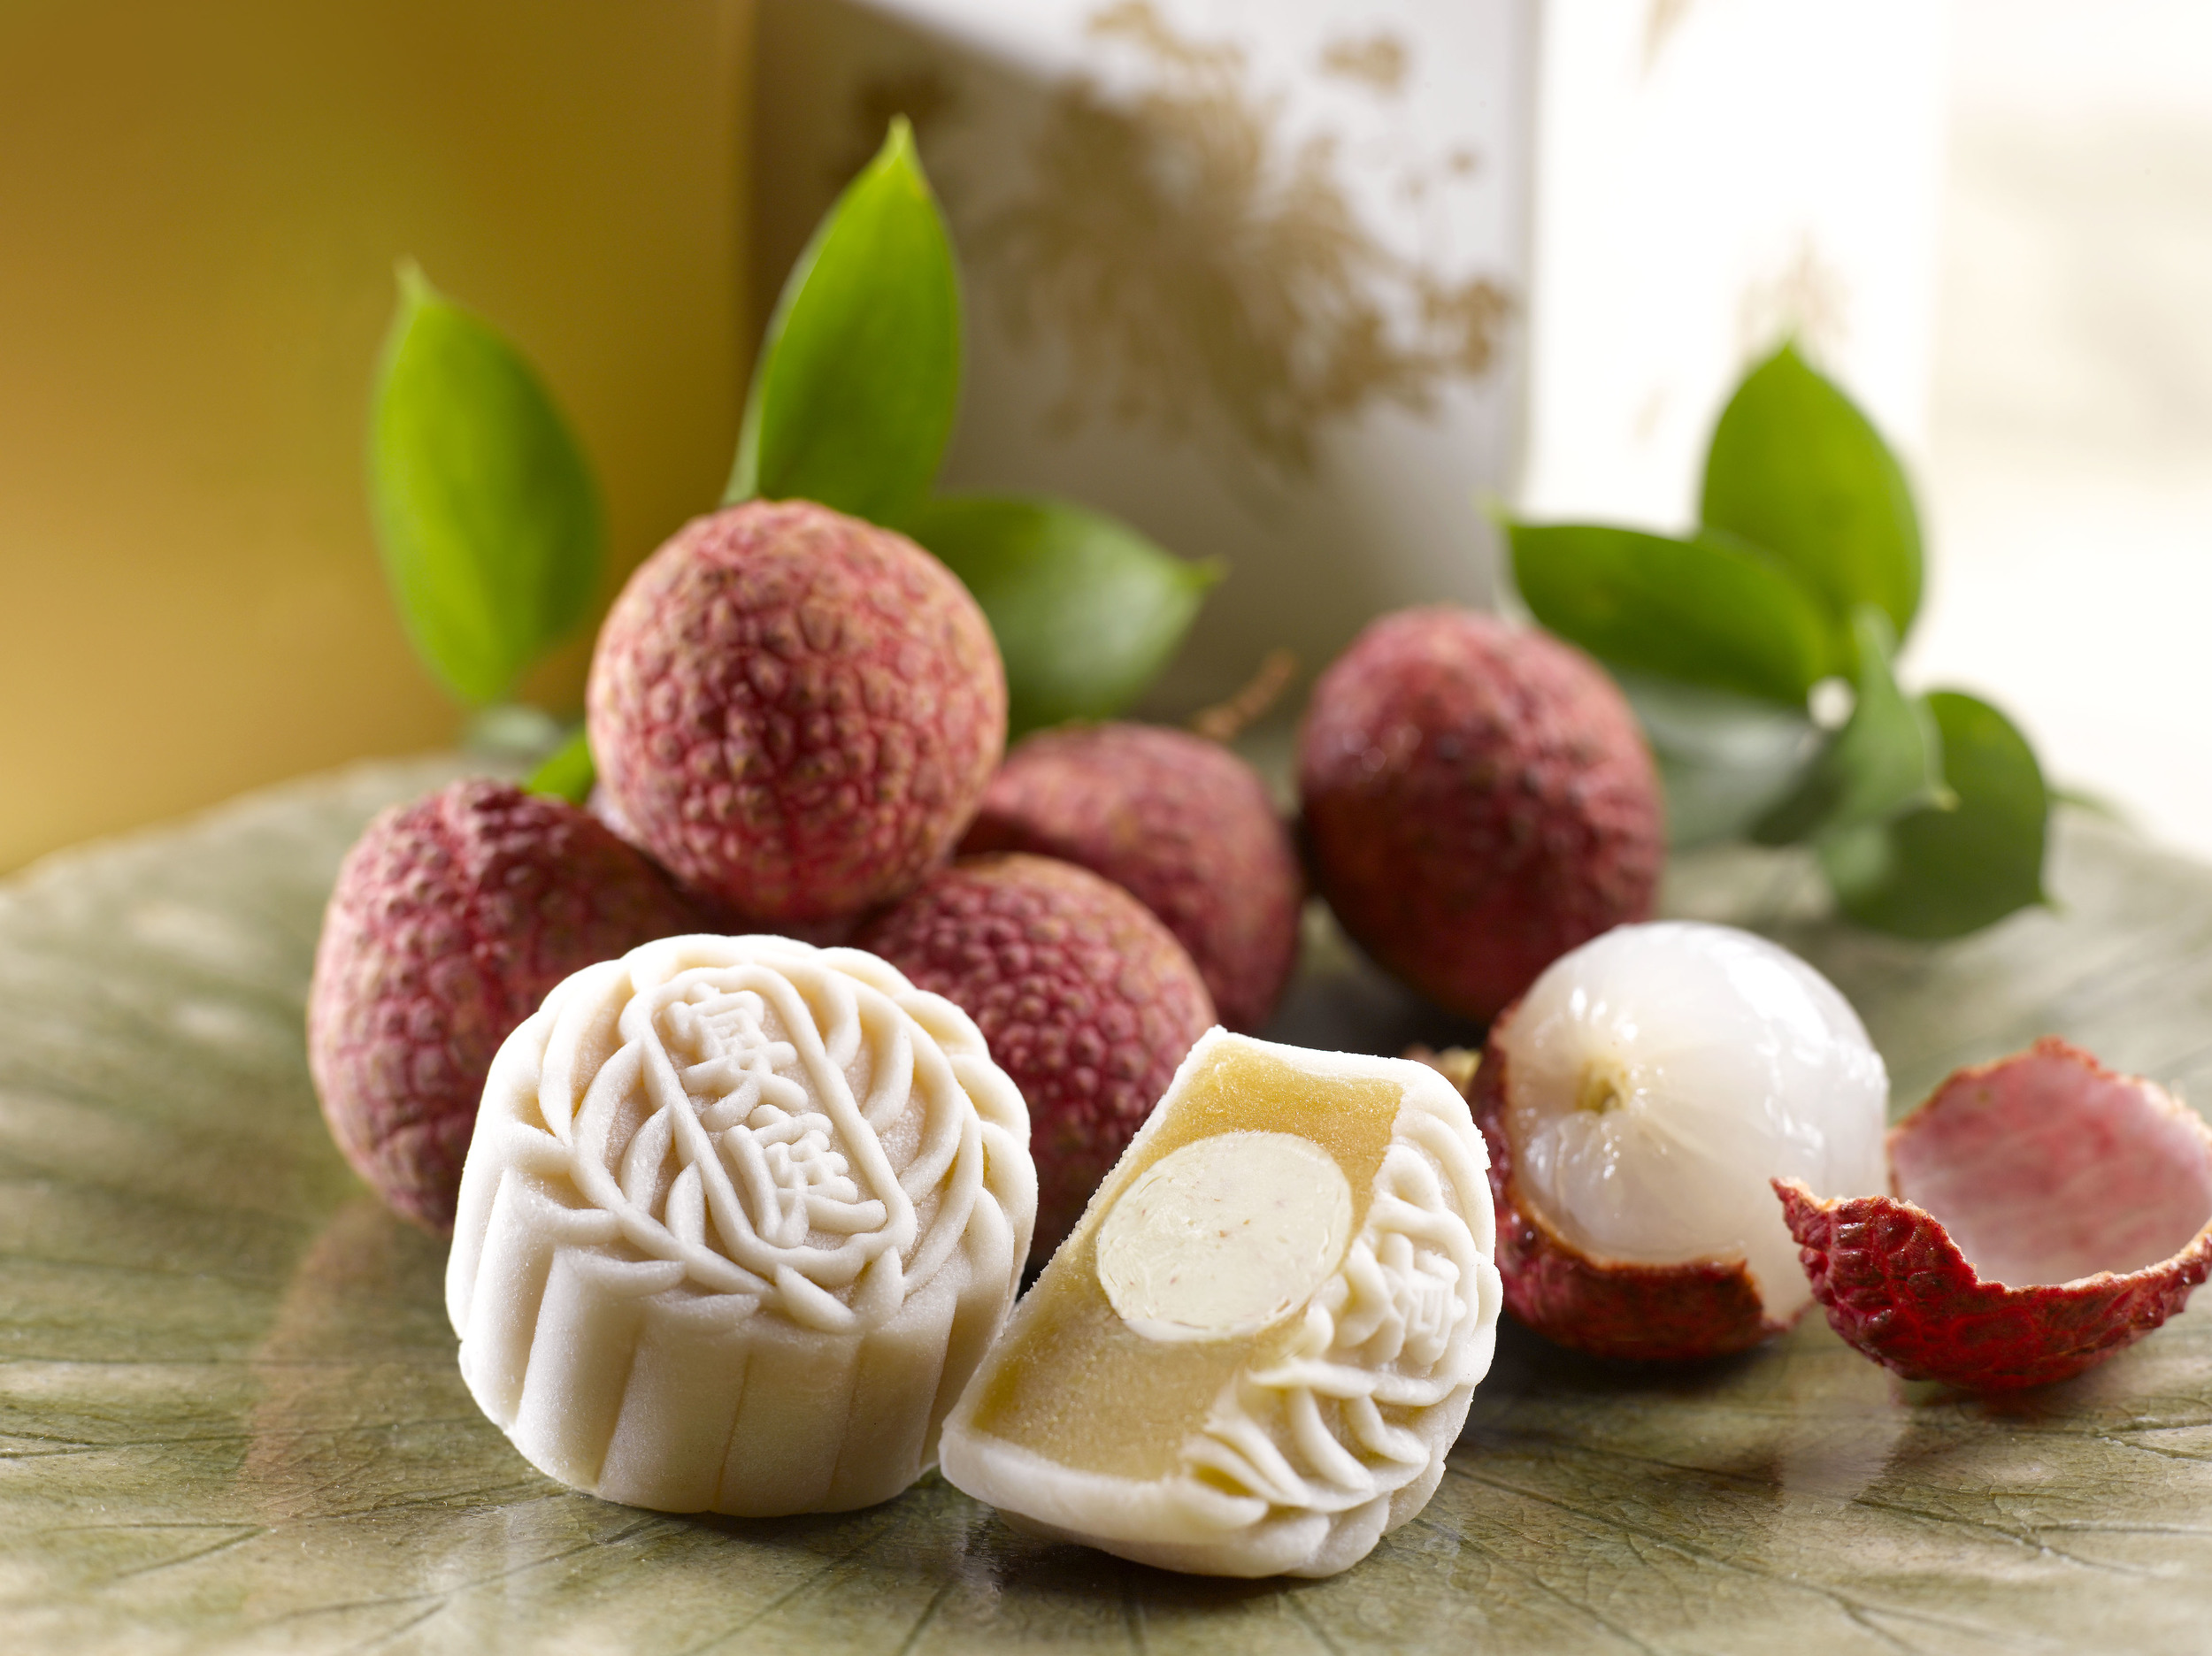 White Lotus Paste with Lychee Martini Truffle Mooncake (S$75+ for a box of 8)| Photo Credit: The St. Regis Singapore